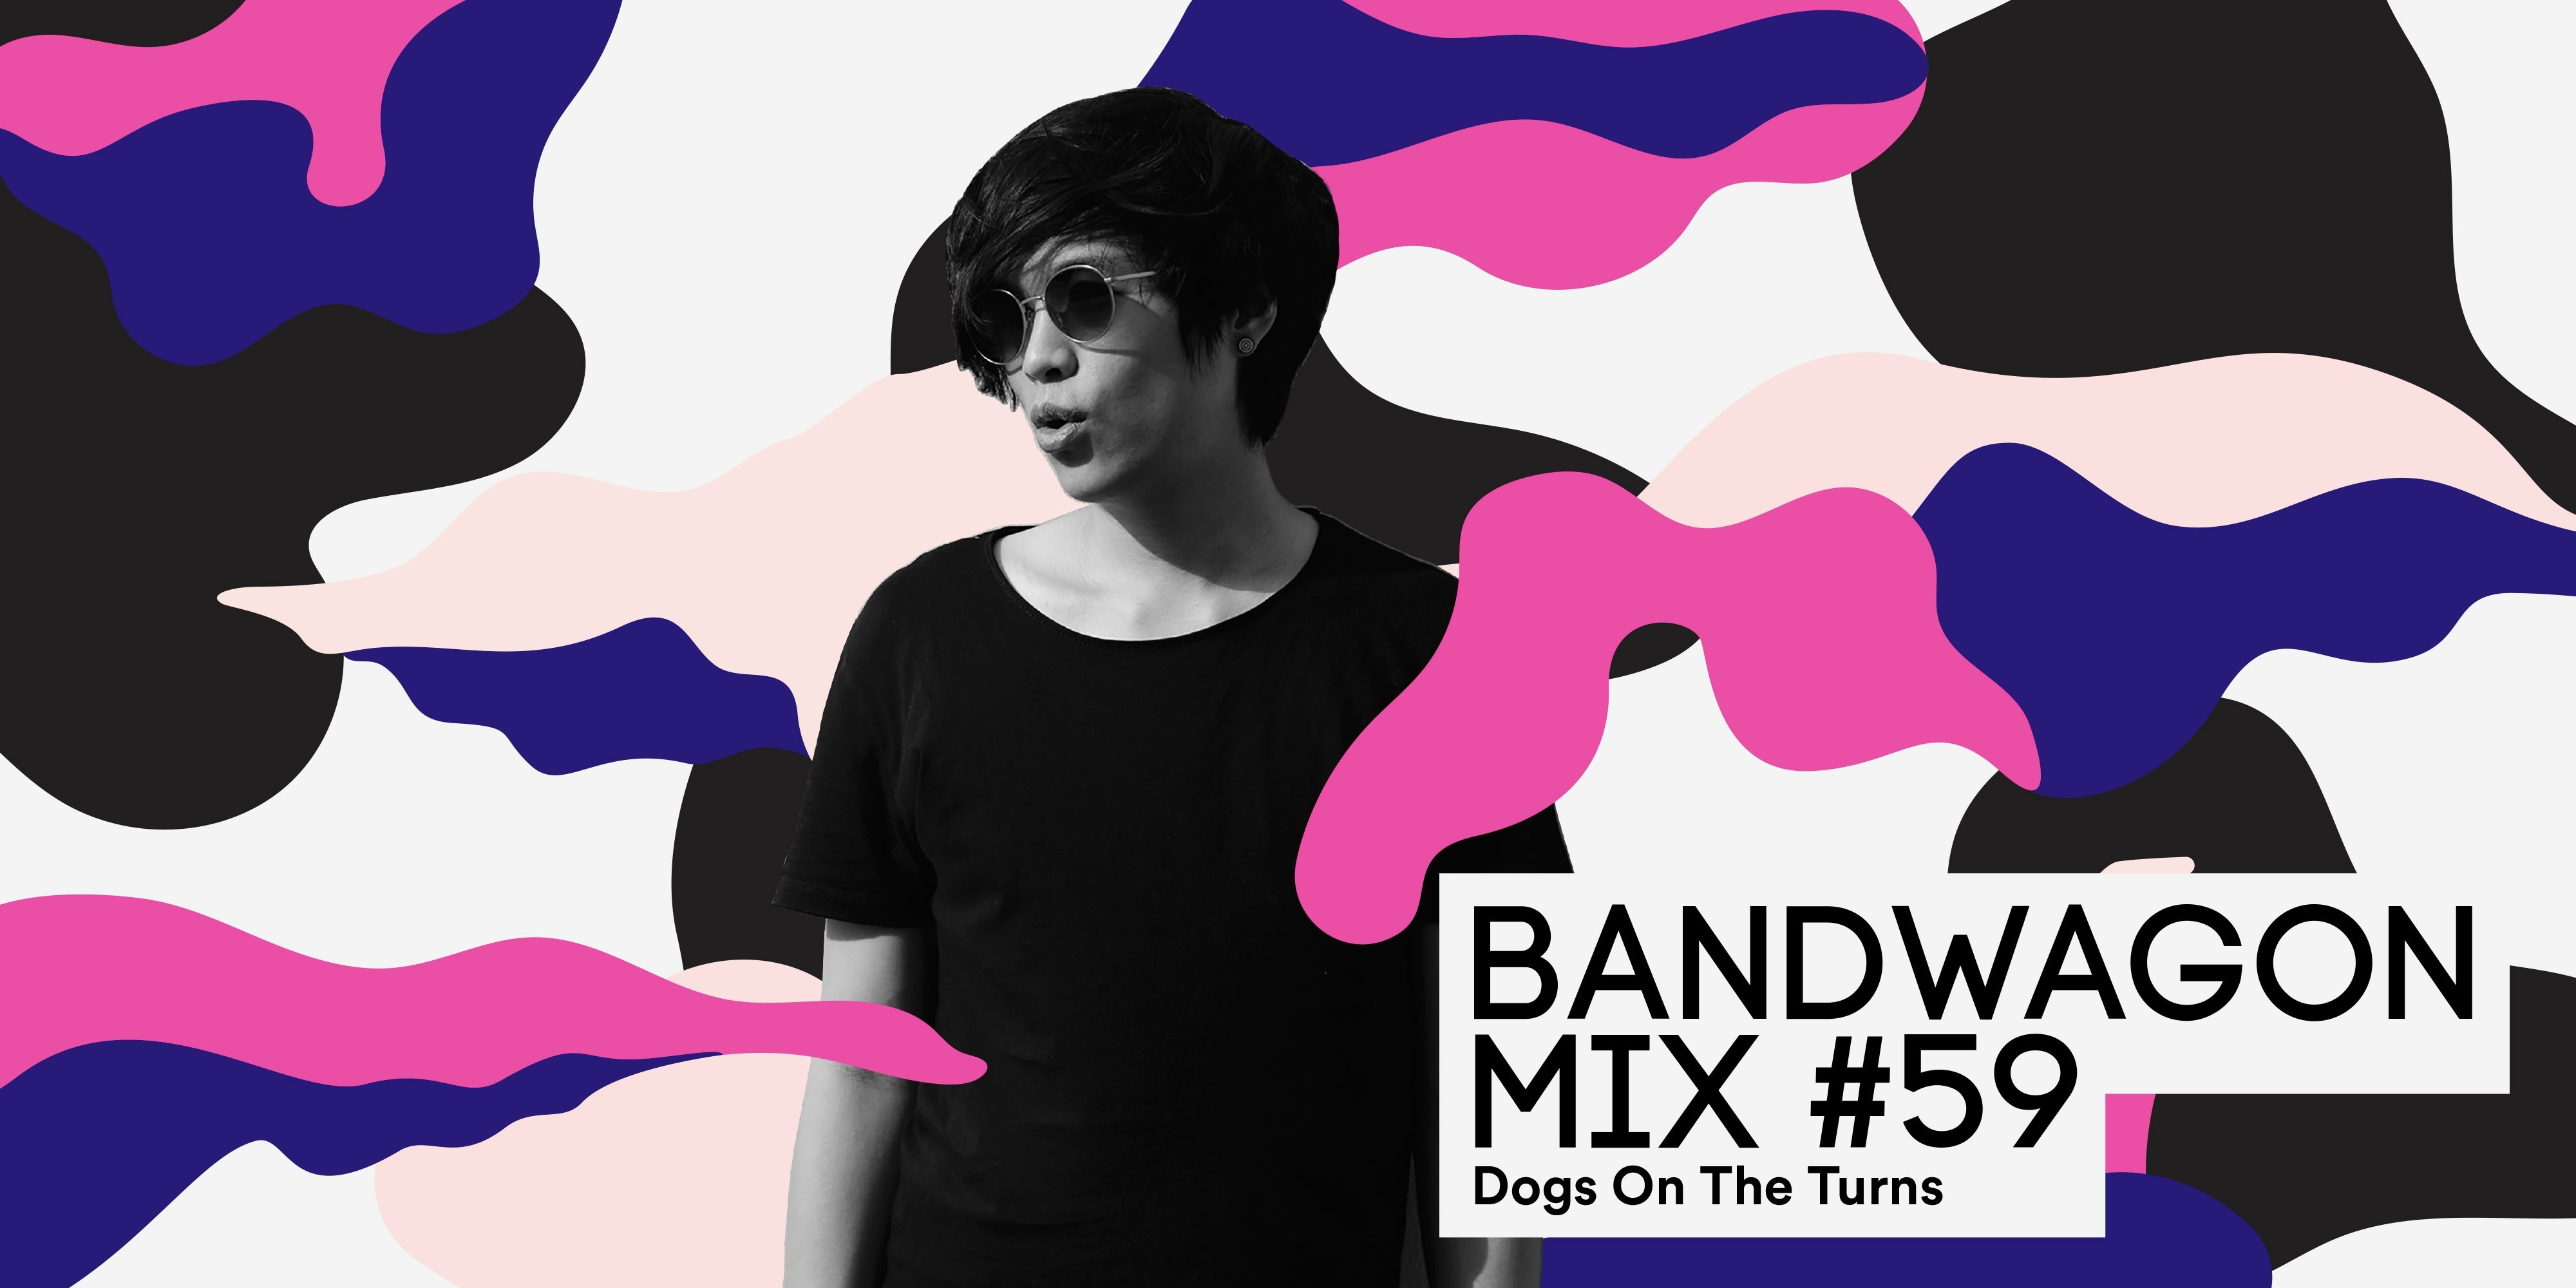 Bandwagon Mix #59: Dogs On The Turns